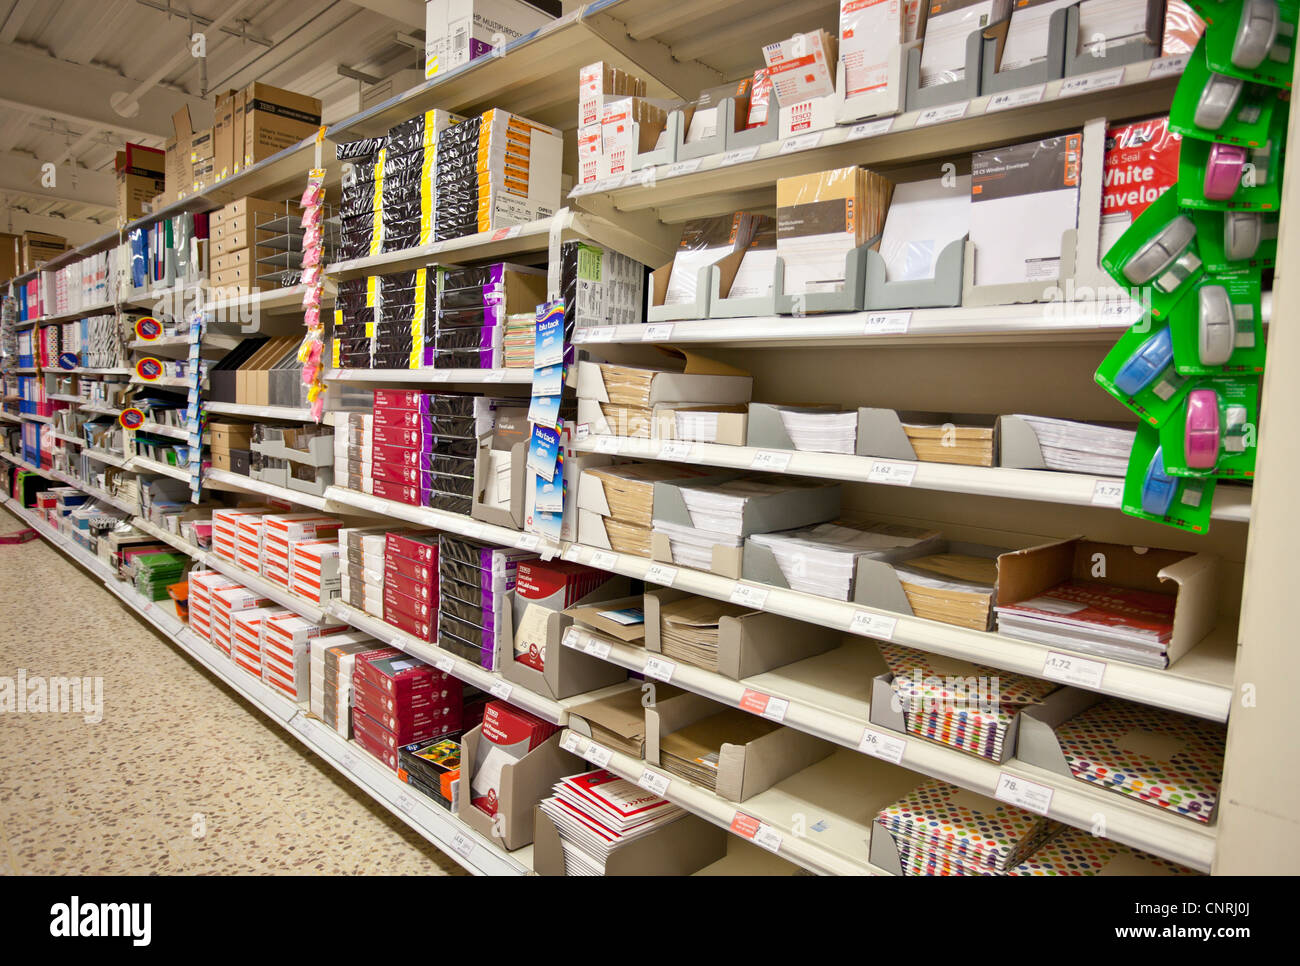 Stationary shelves in an aisle of a shop, London, England, UK - Stock Image